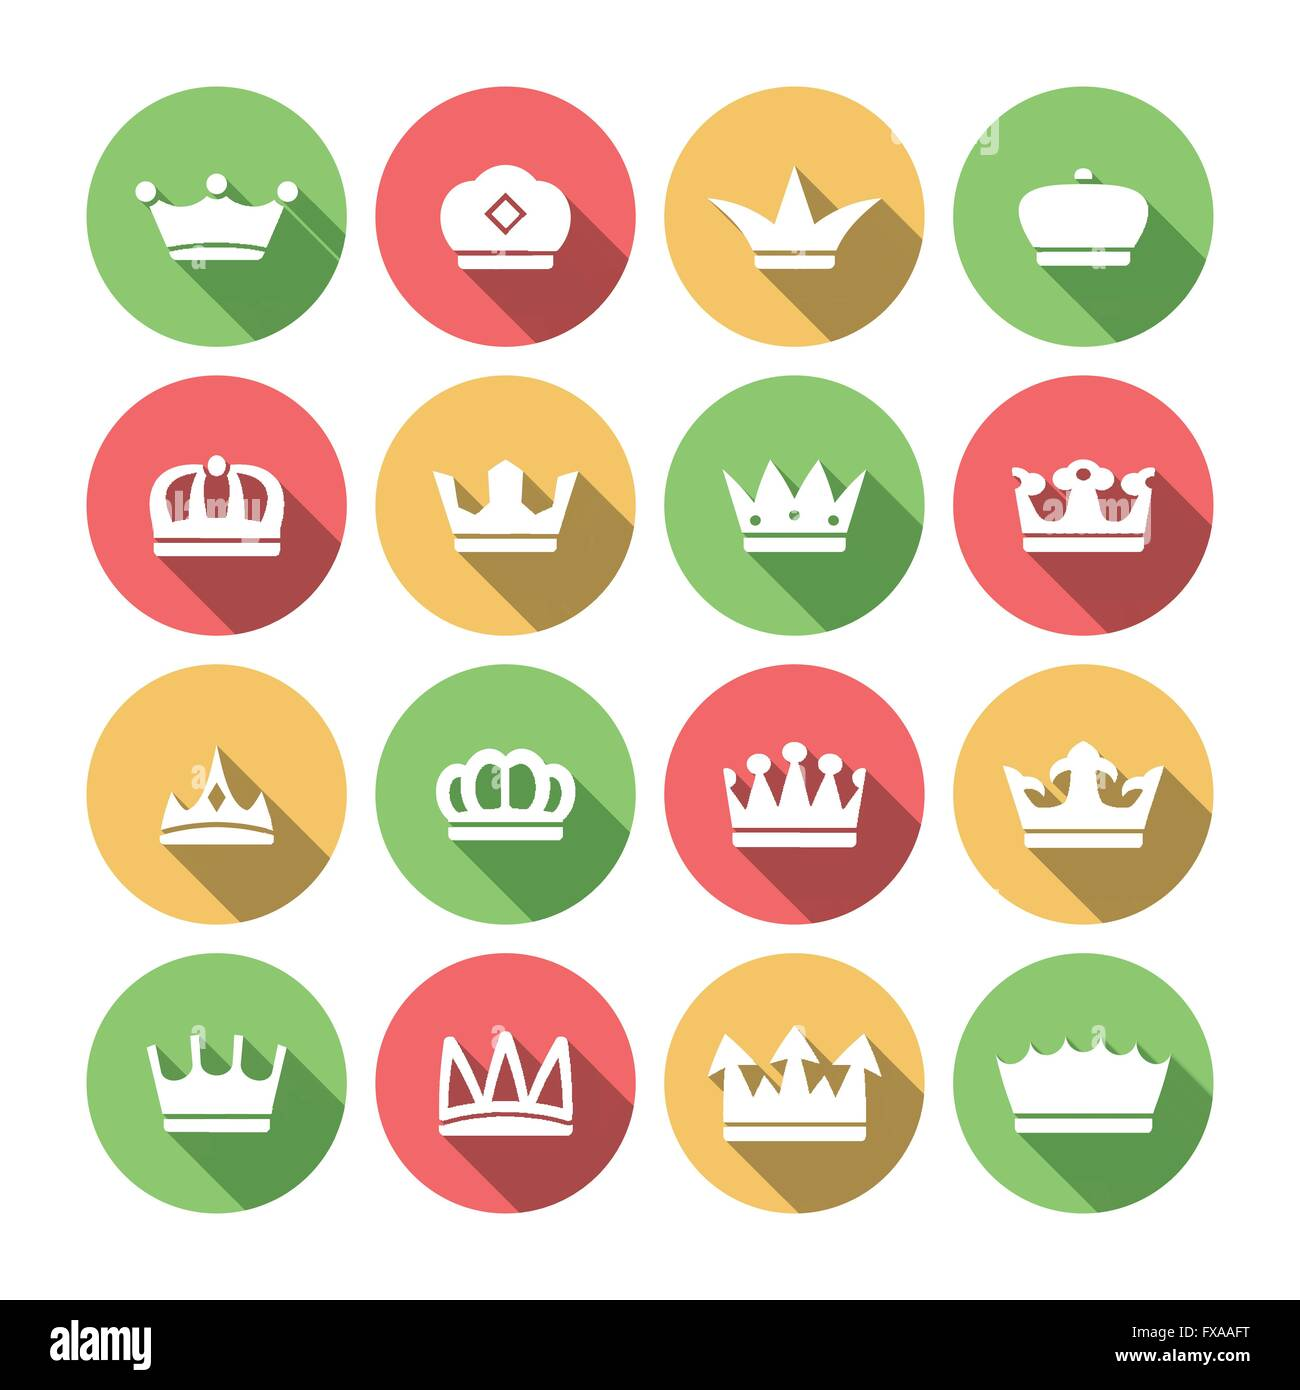 Crown Icons Set - Stock Image